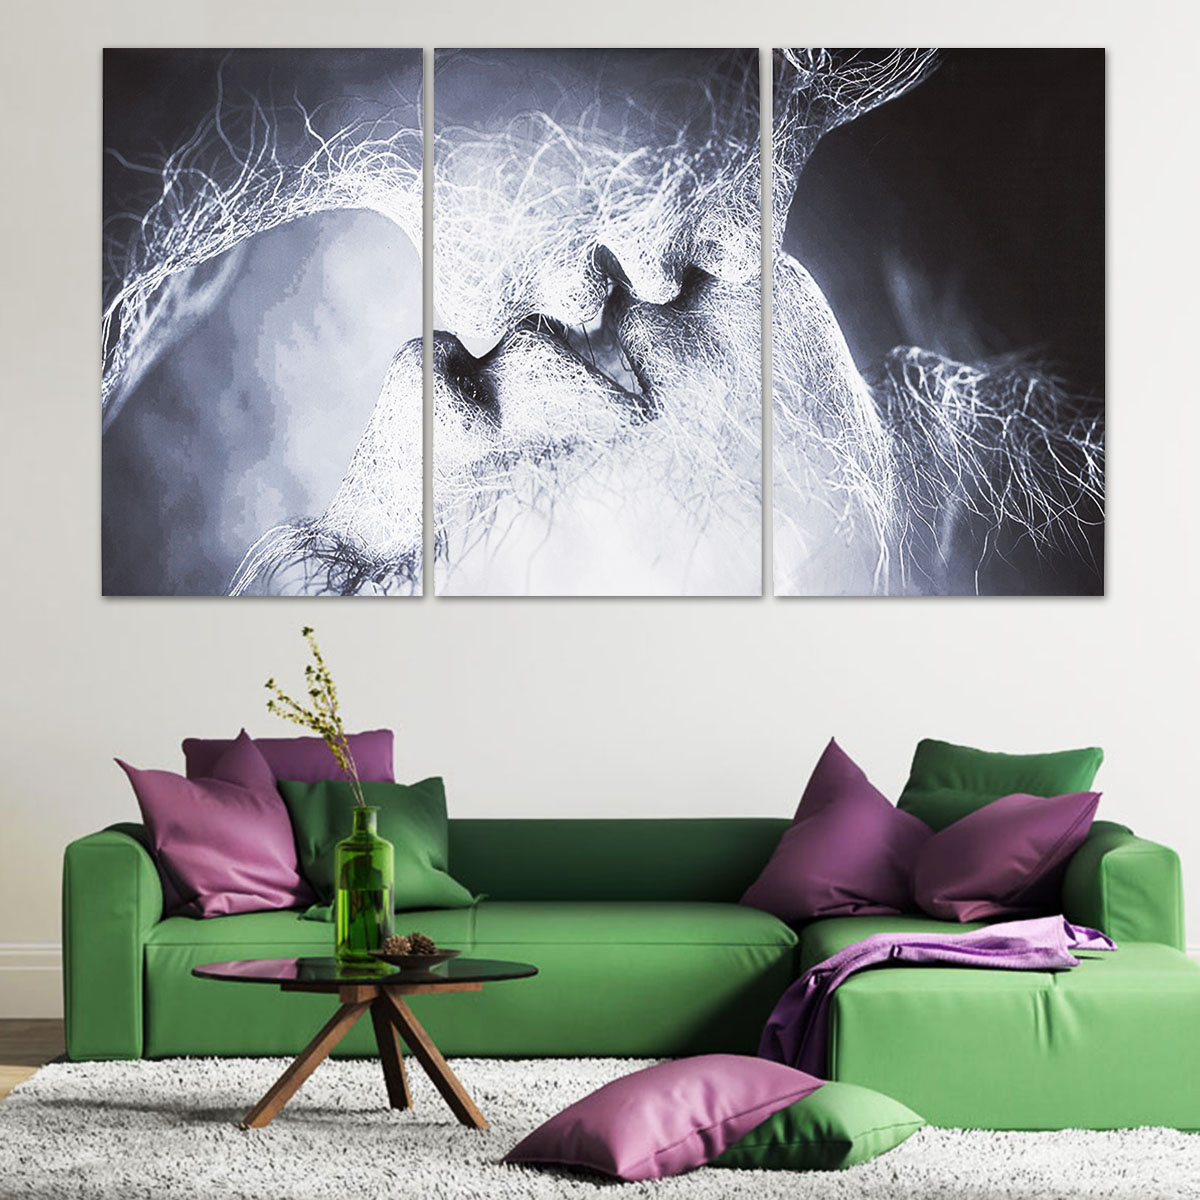 3Pcs Love Kiss Abstract Canvas Print Paintings Pictures Home Wall Decor Unframed